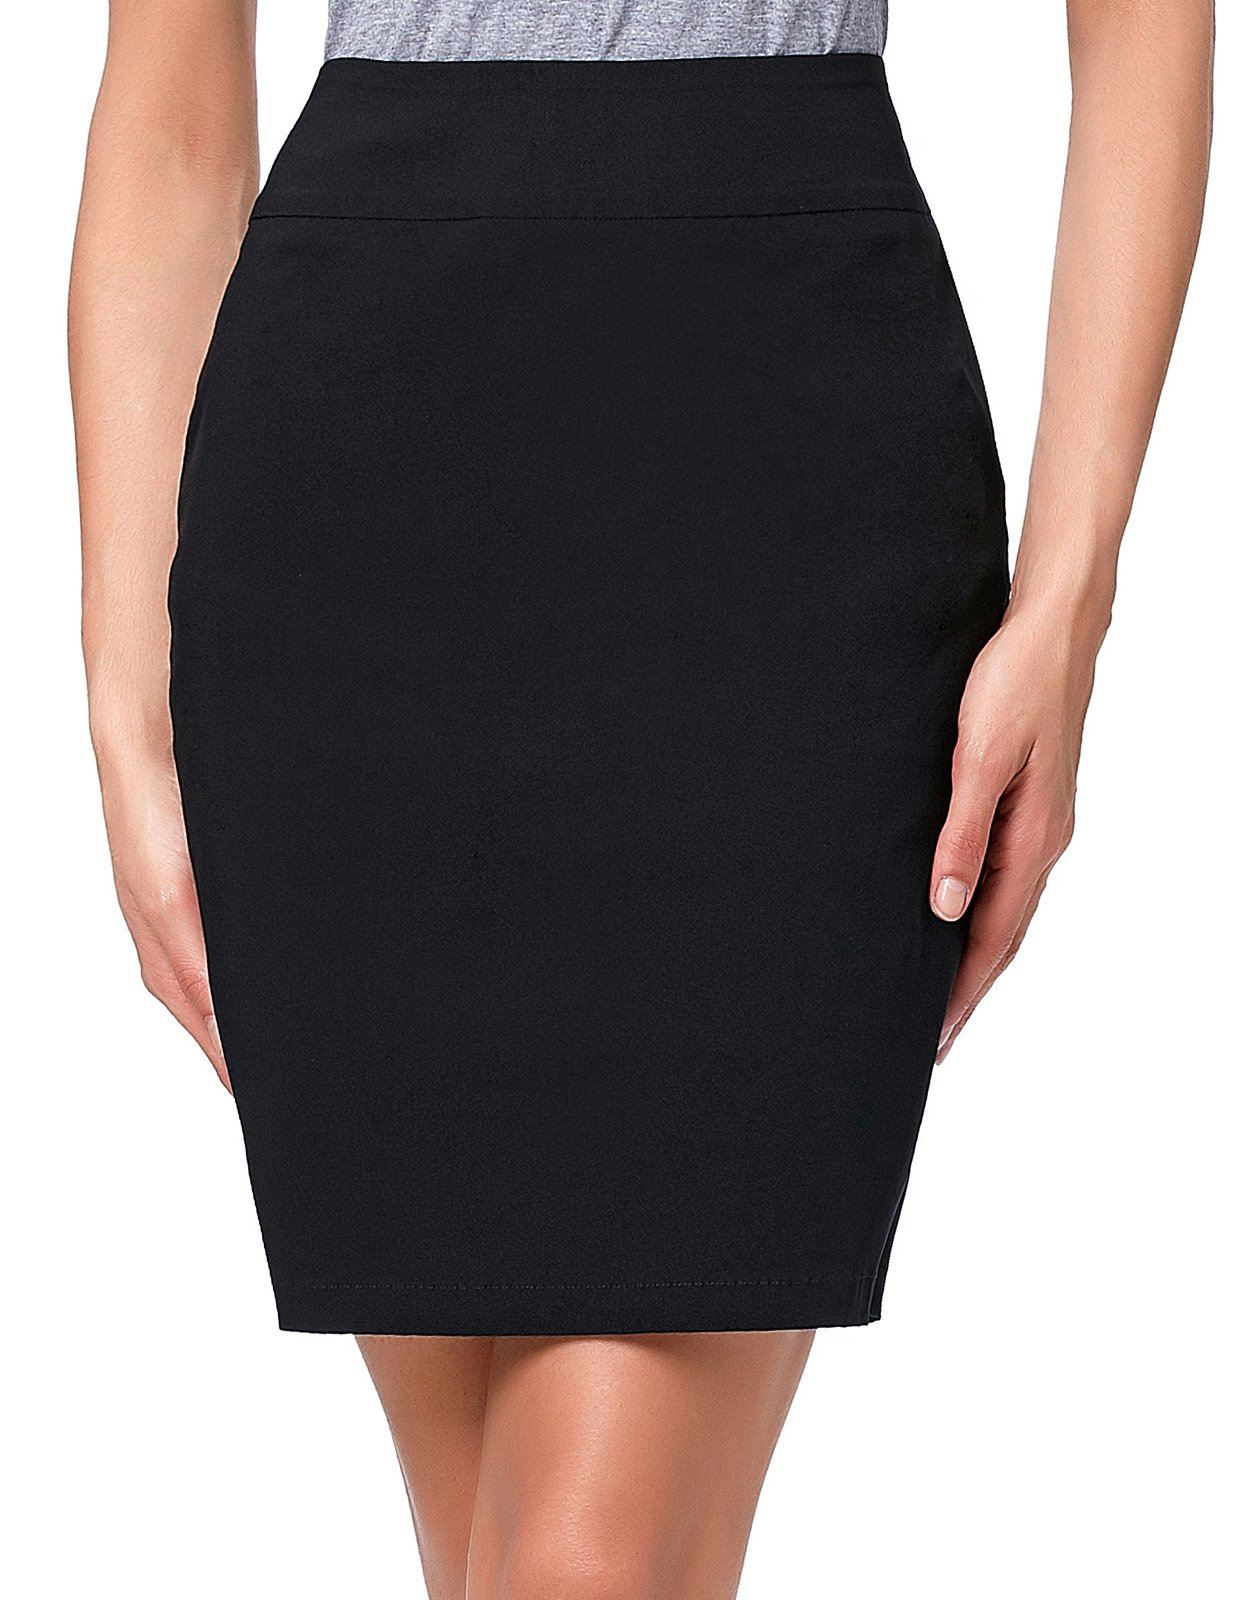 Kate Kasin Slim Fit Above Knee Casual Pencil Skirt for Occident Women XL KK276-1